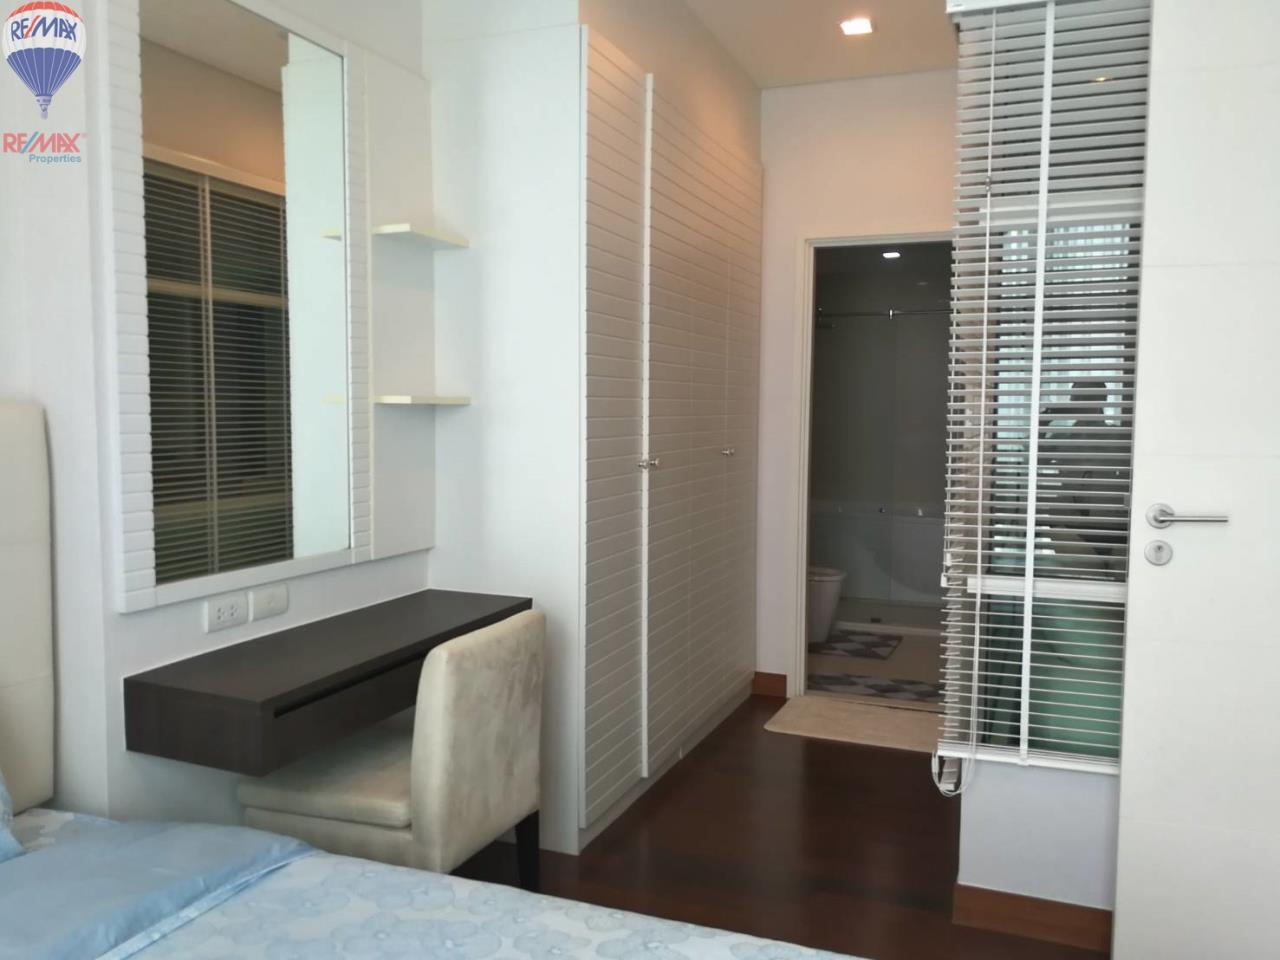 RE/MAX Properties Agency's FOR RENT 1 BED 43 SQM AT IVY THONGLOR 6